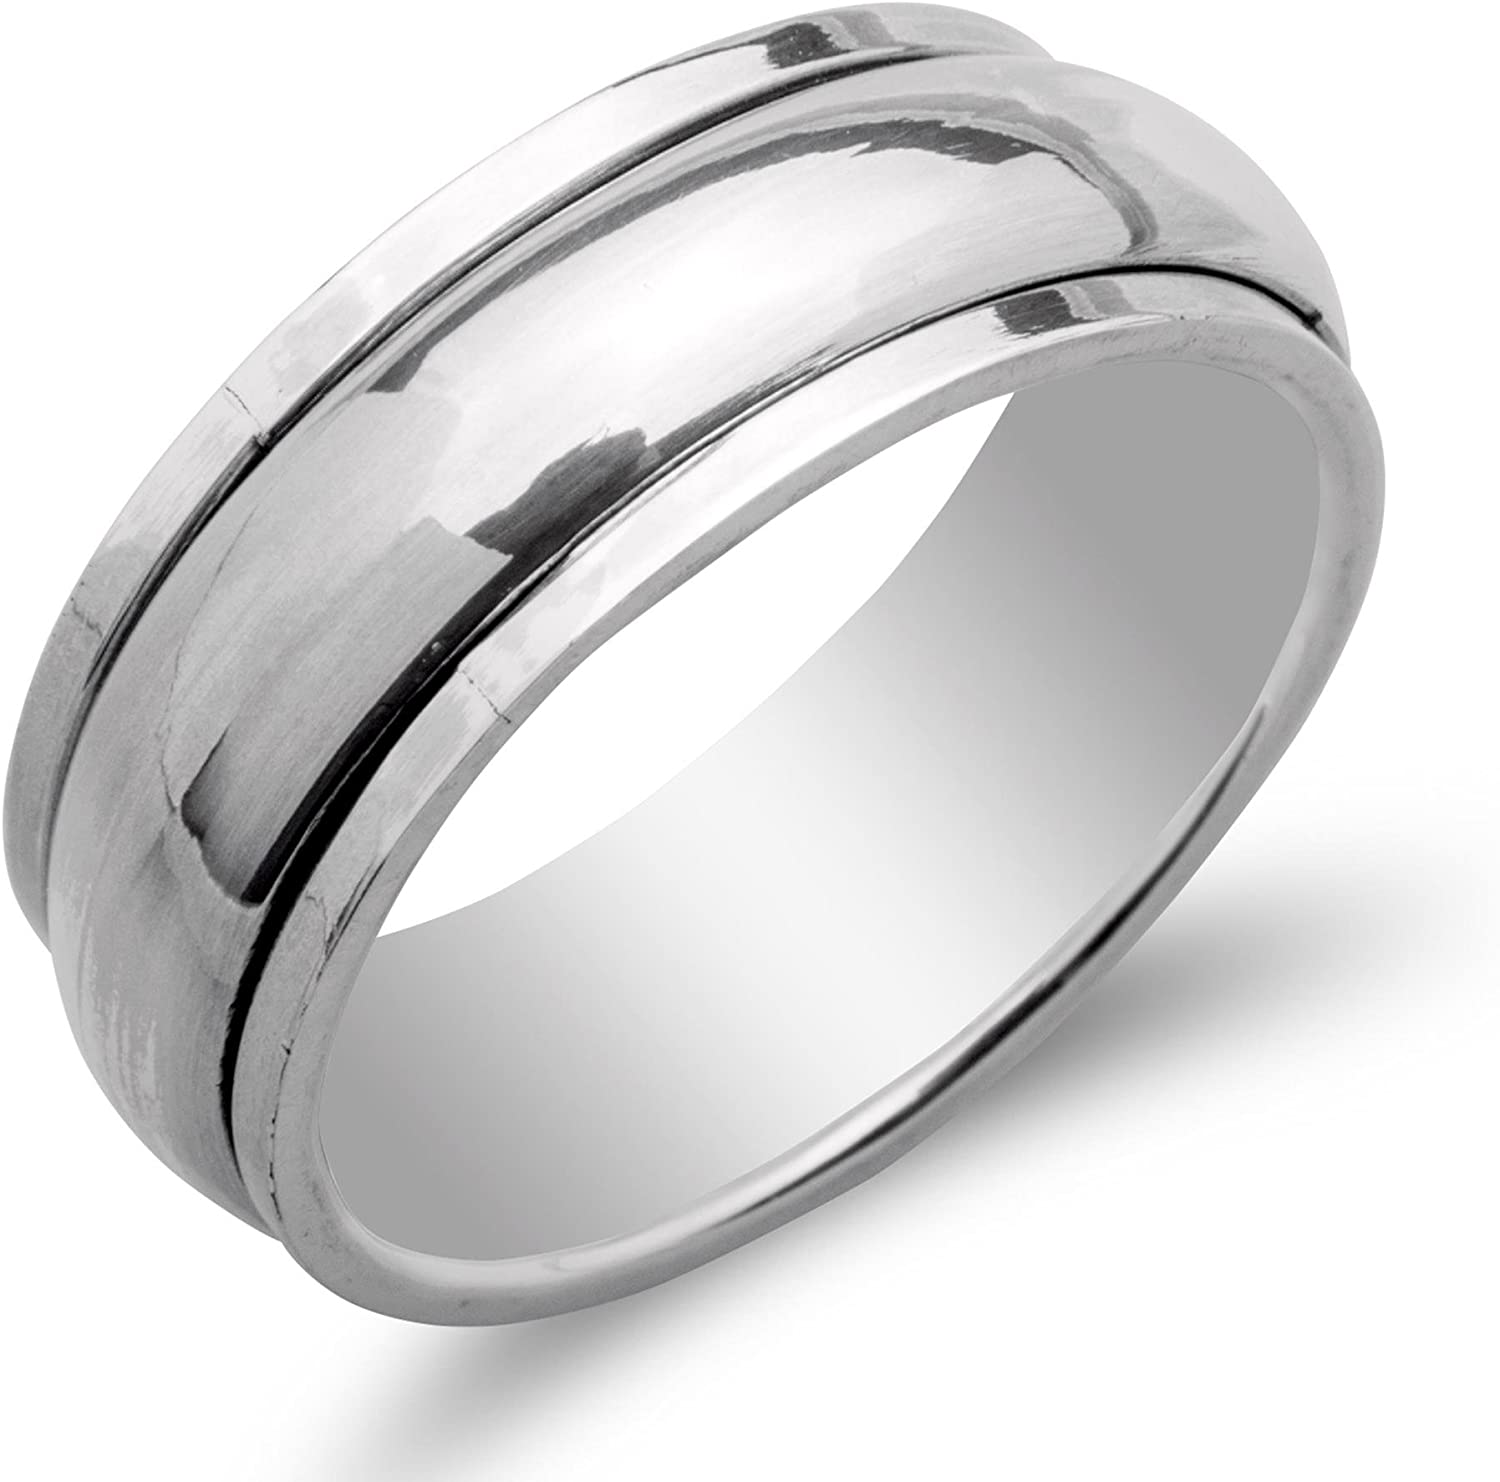 Handmade Design Ring 925 Solid Silver Ring Thumb Band Ring Gift For Man /& Women Beautiful Ring For Thumb